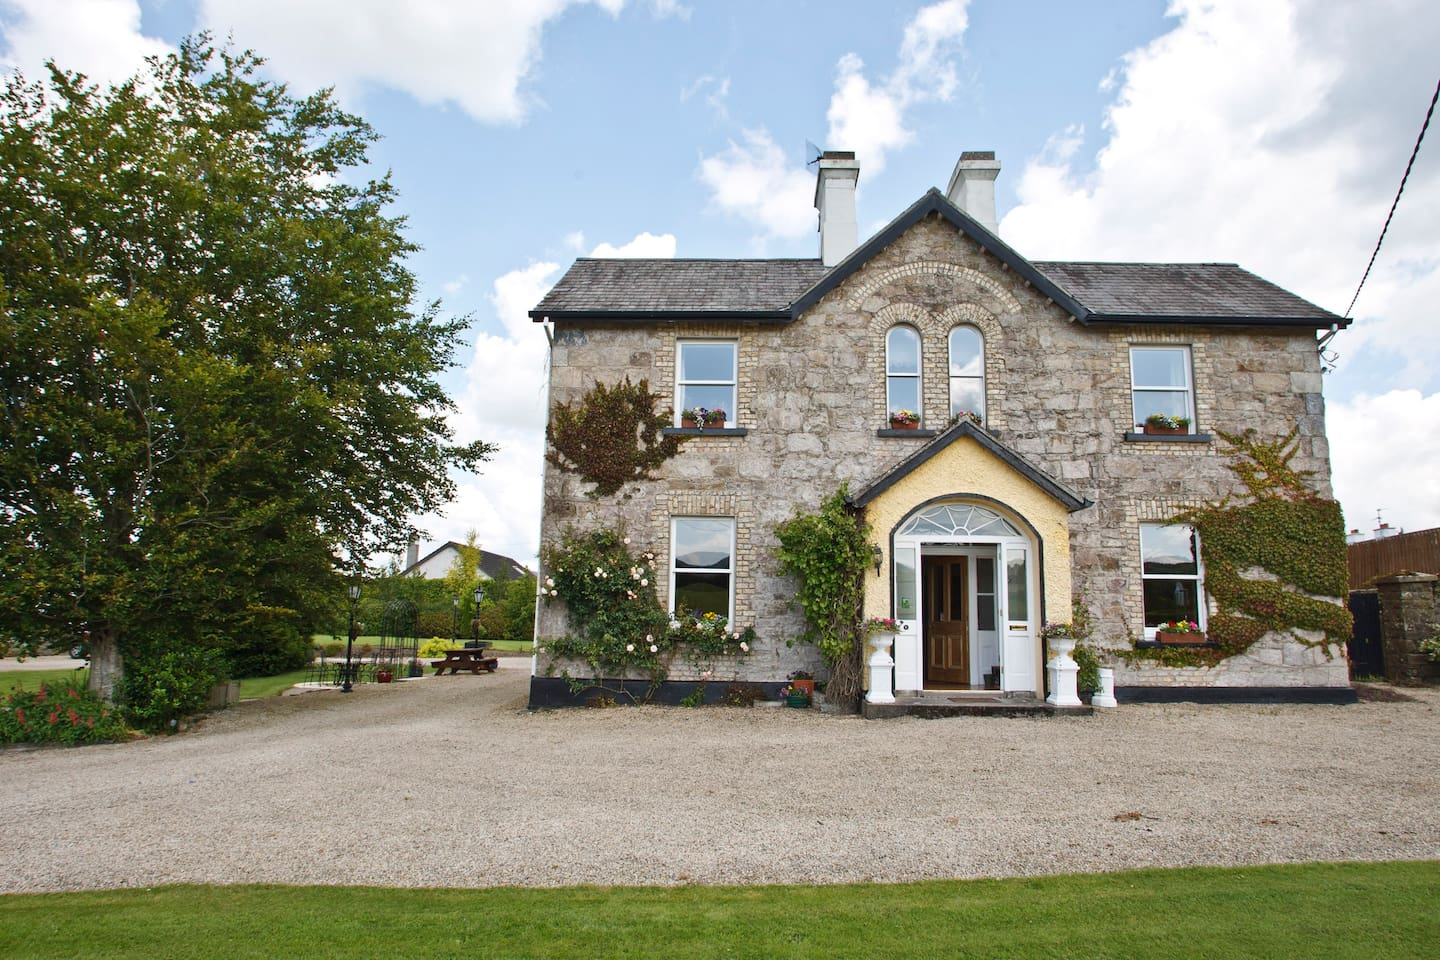 Ardmore Country House bed and breakfast Kinnitty Birr Co Offaly less than 2 hours from Dublin, Galway, Cliffs of Moher, Kilkenny, Cashel Blarney, Killarney